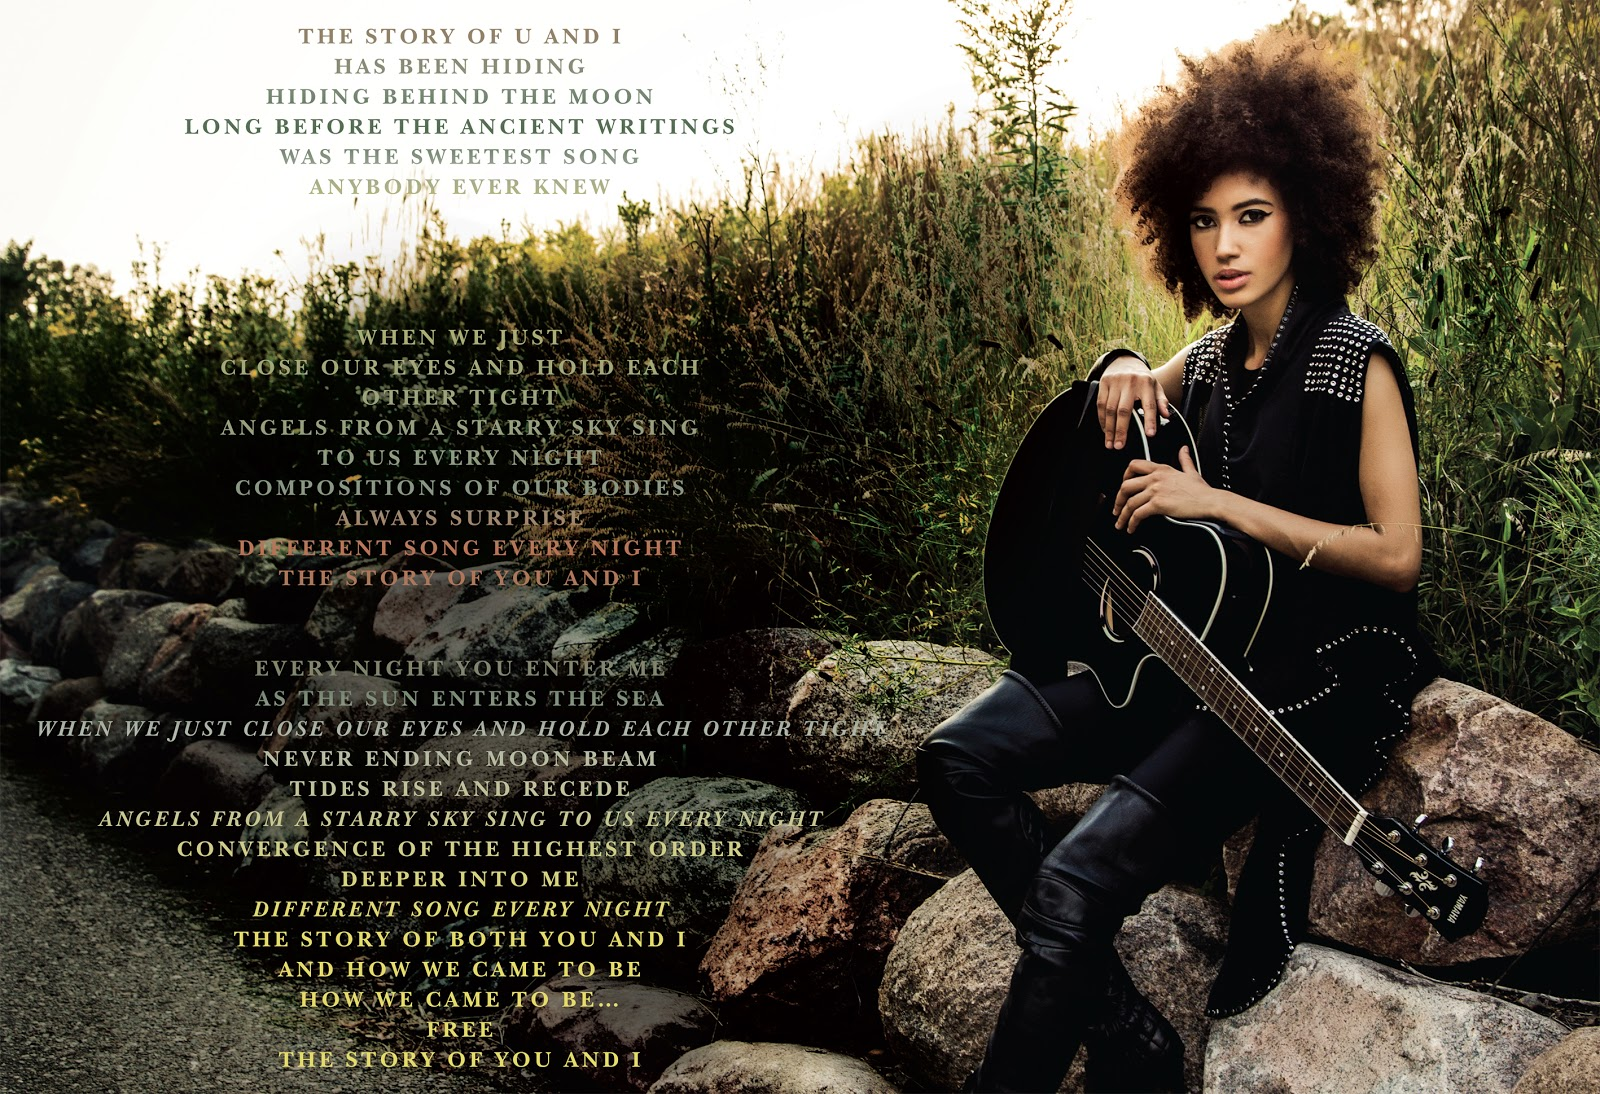 Prince and andy allo 2011 2014 and i gives us a snapshot of a conversation between lovers perhaps one thats personal enough to make us think that maybe we shouldnt be intruding ccuart Images